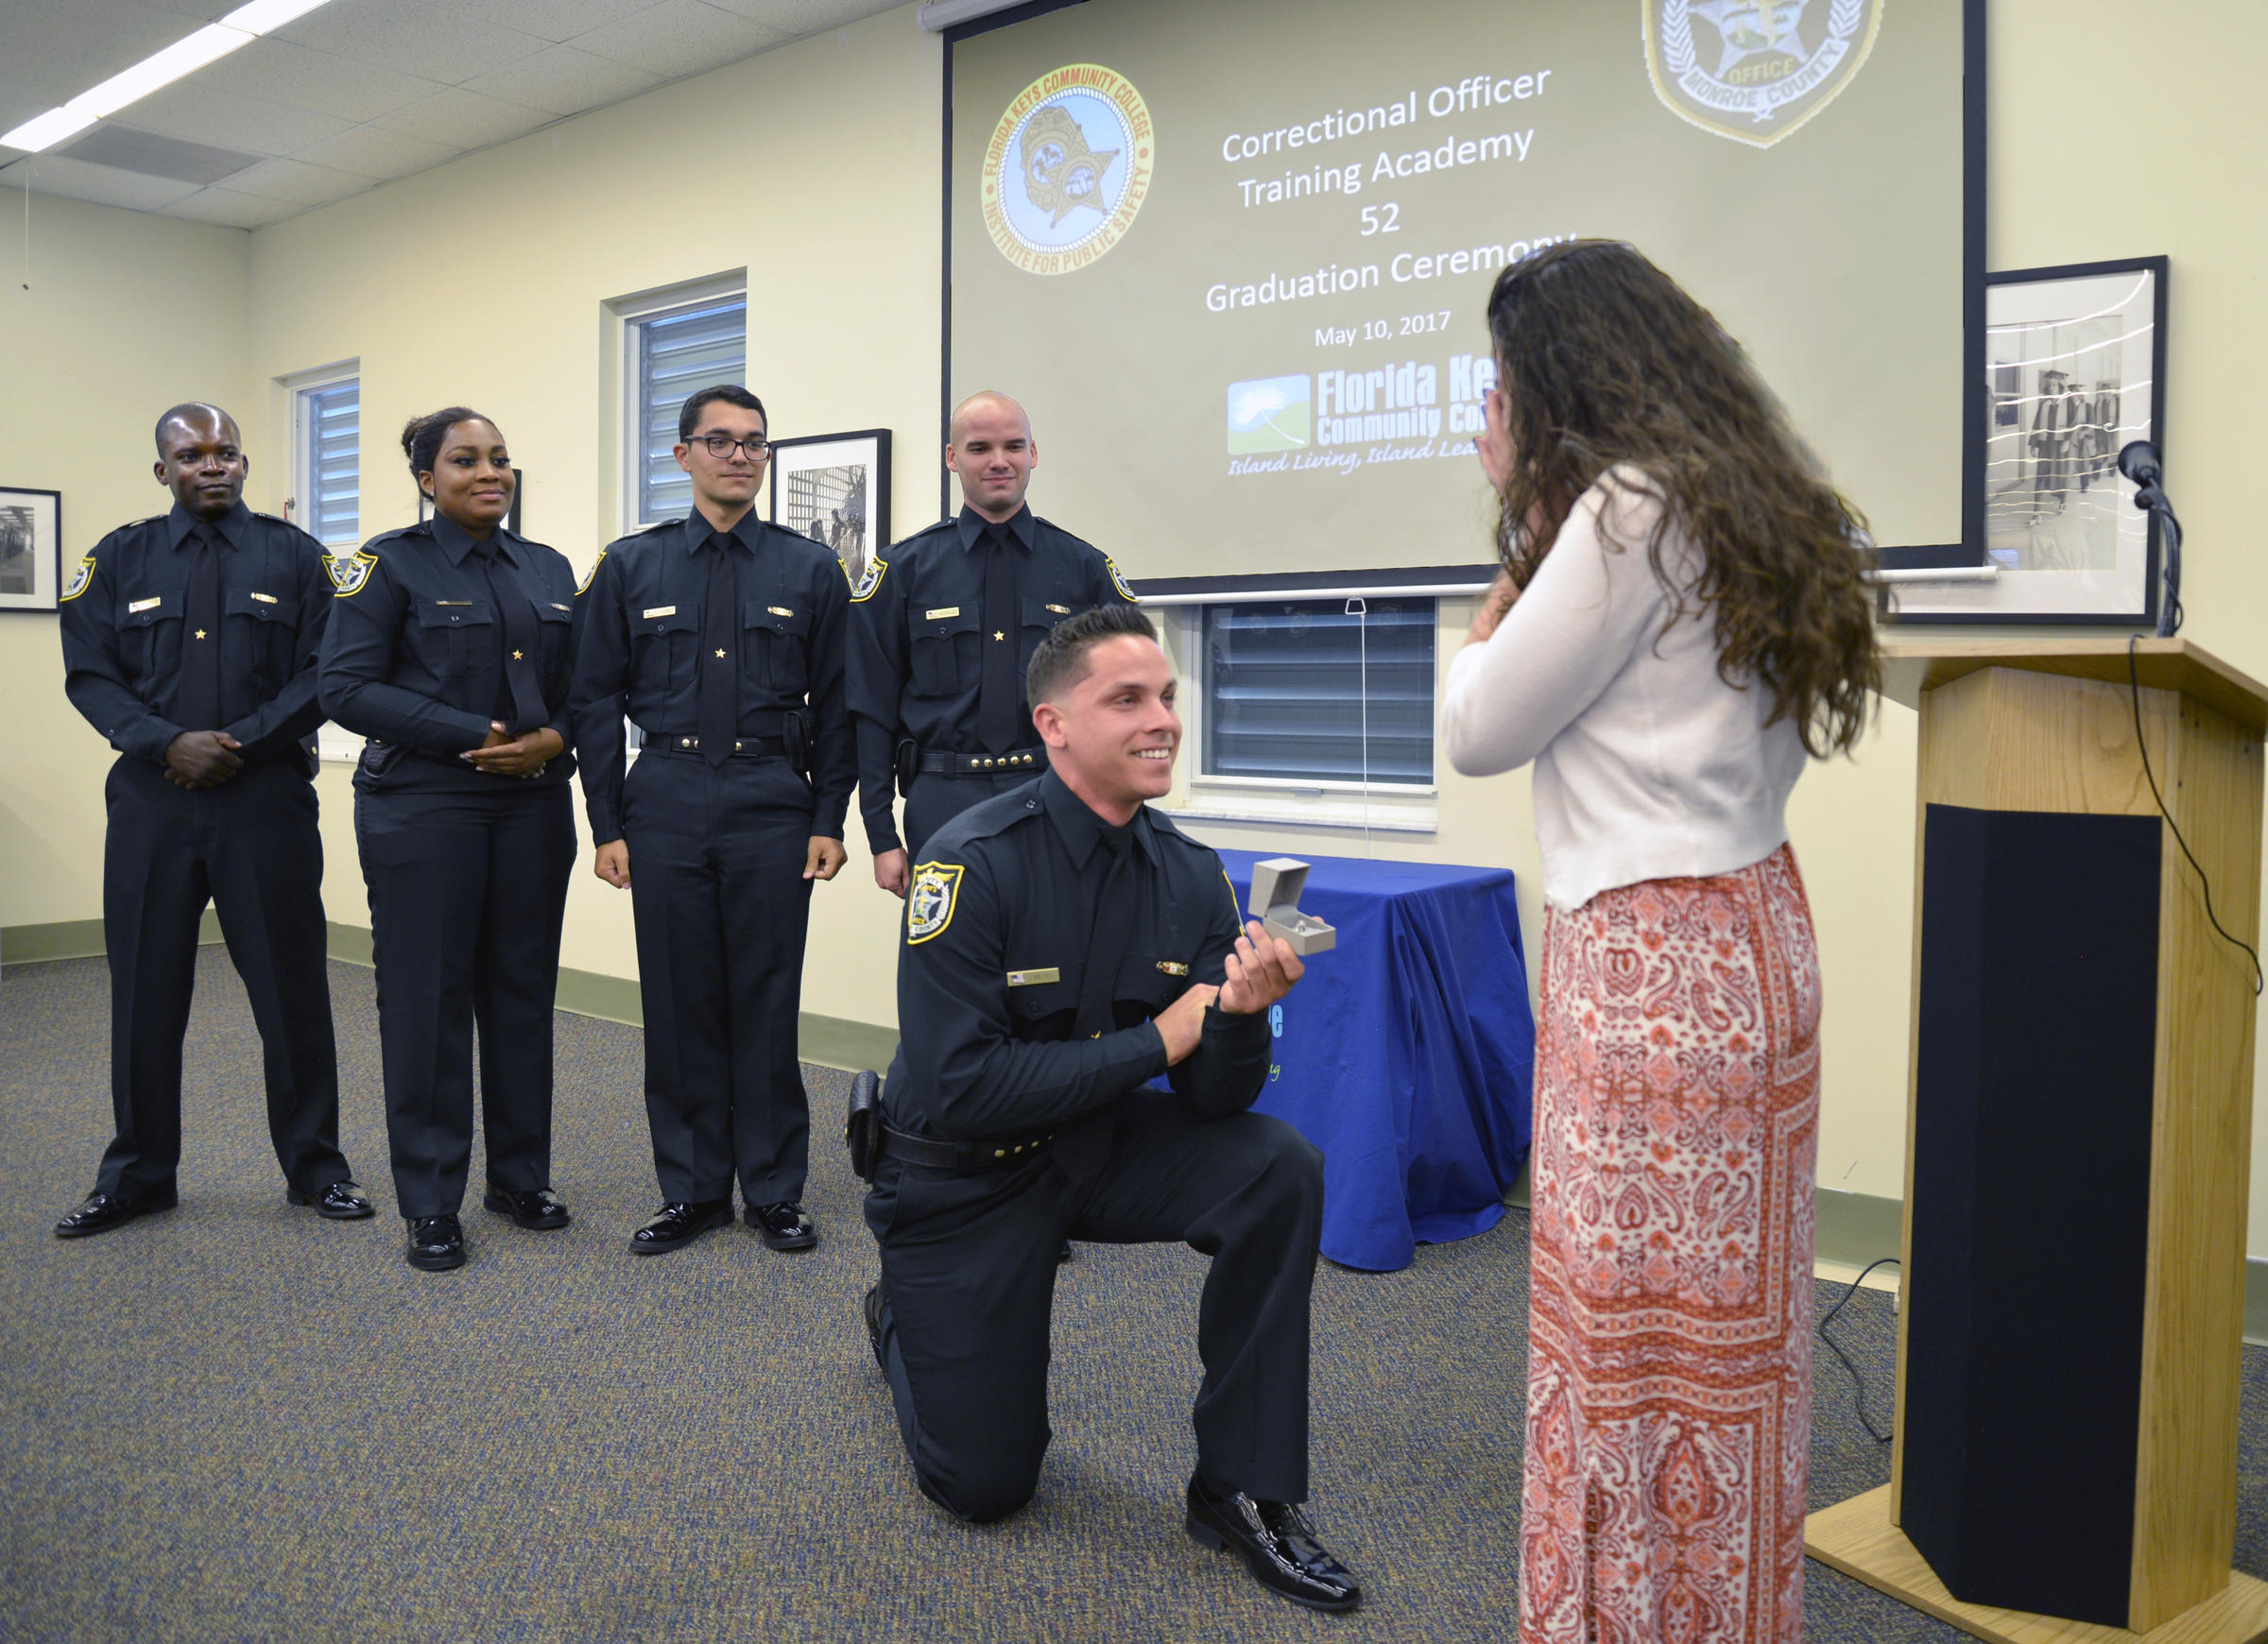 ceremony yields 10 new corrections officers and one engagement wlrn